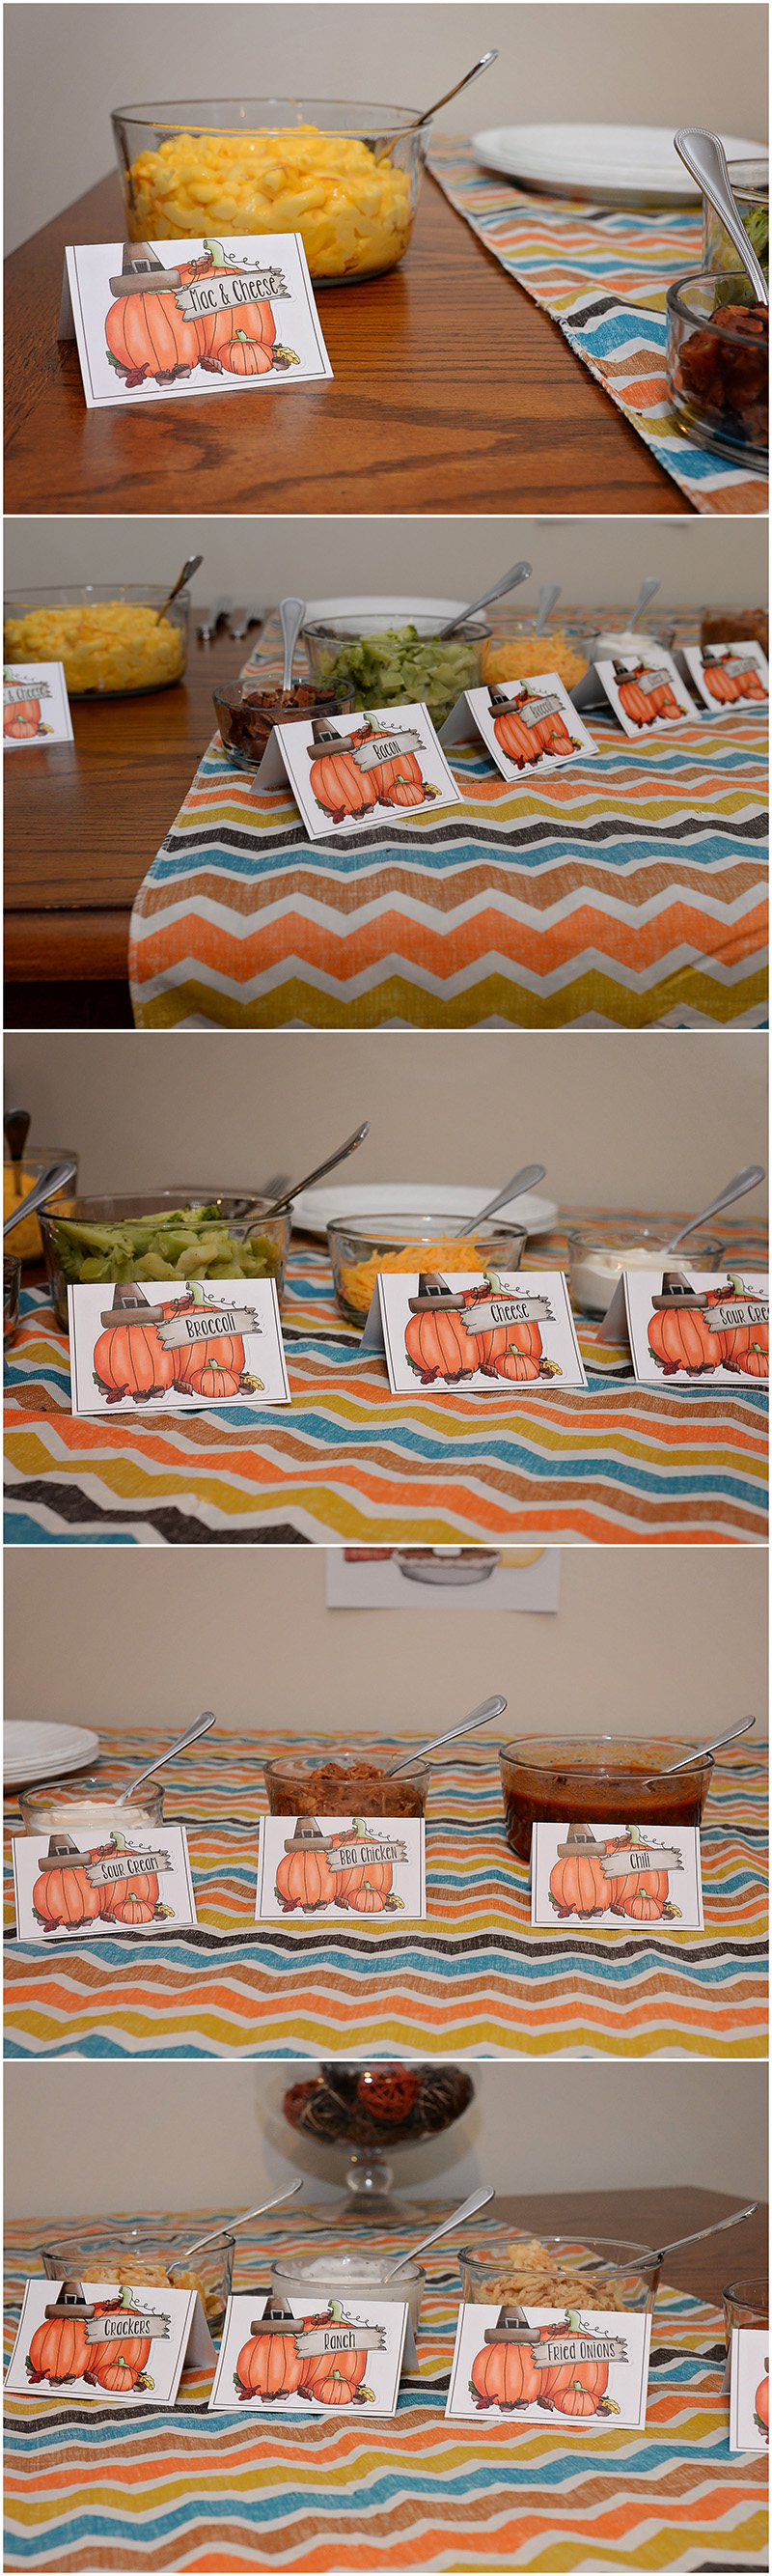 Macaroni and Cheese Bar for entertaining | #Feast4All #CollectiveBias #ad